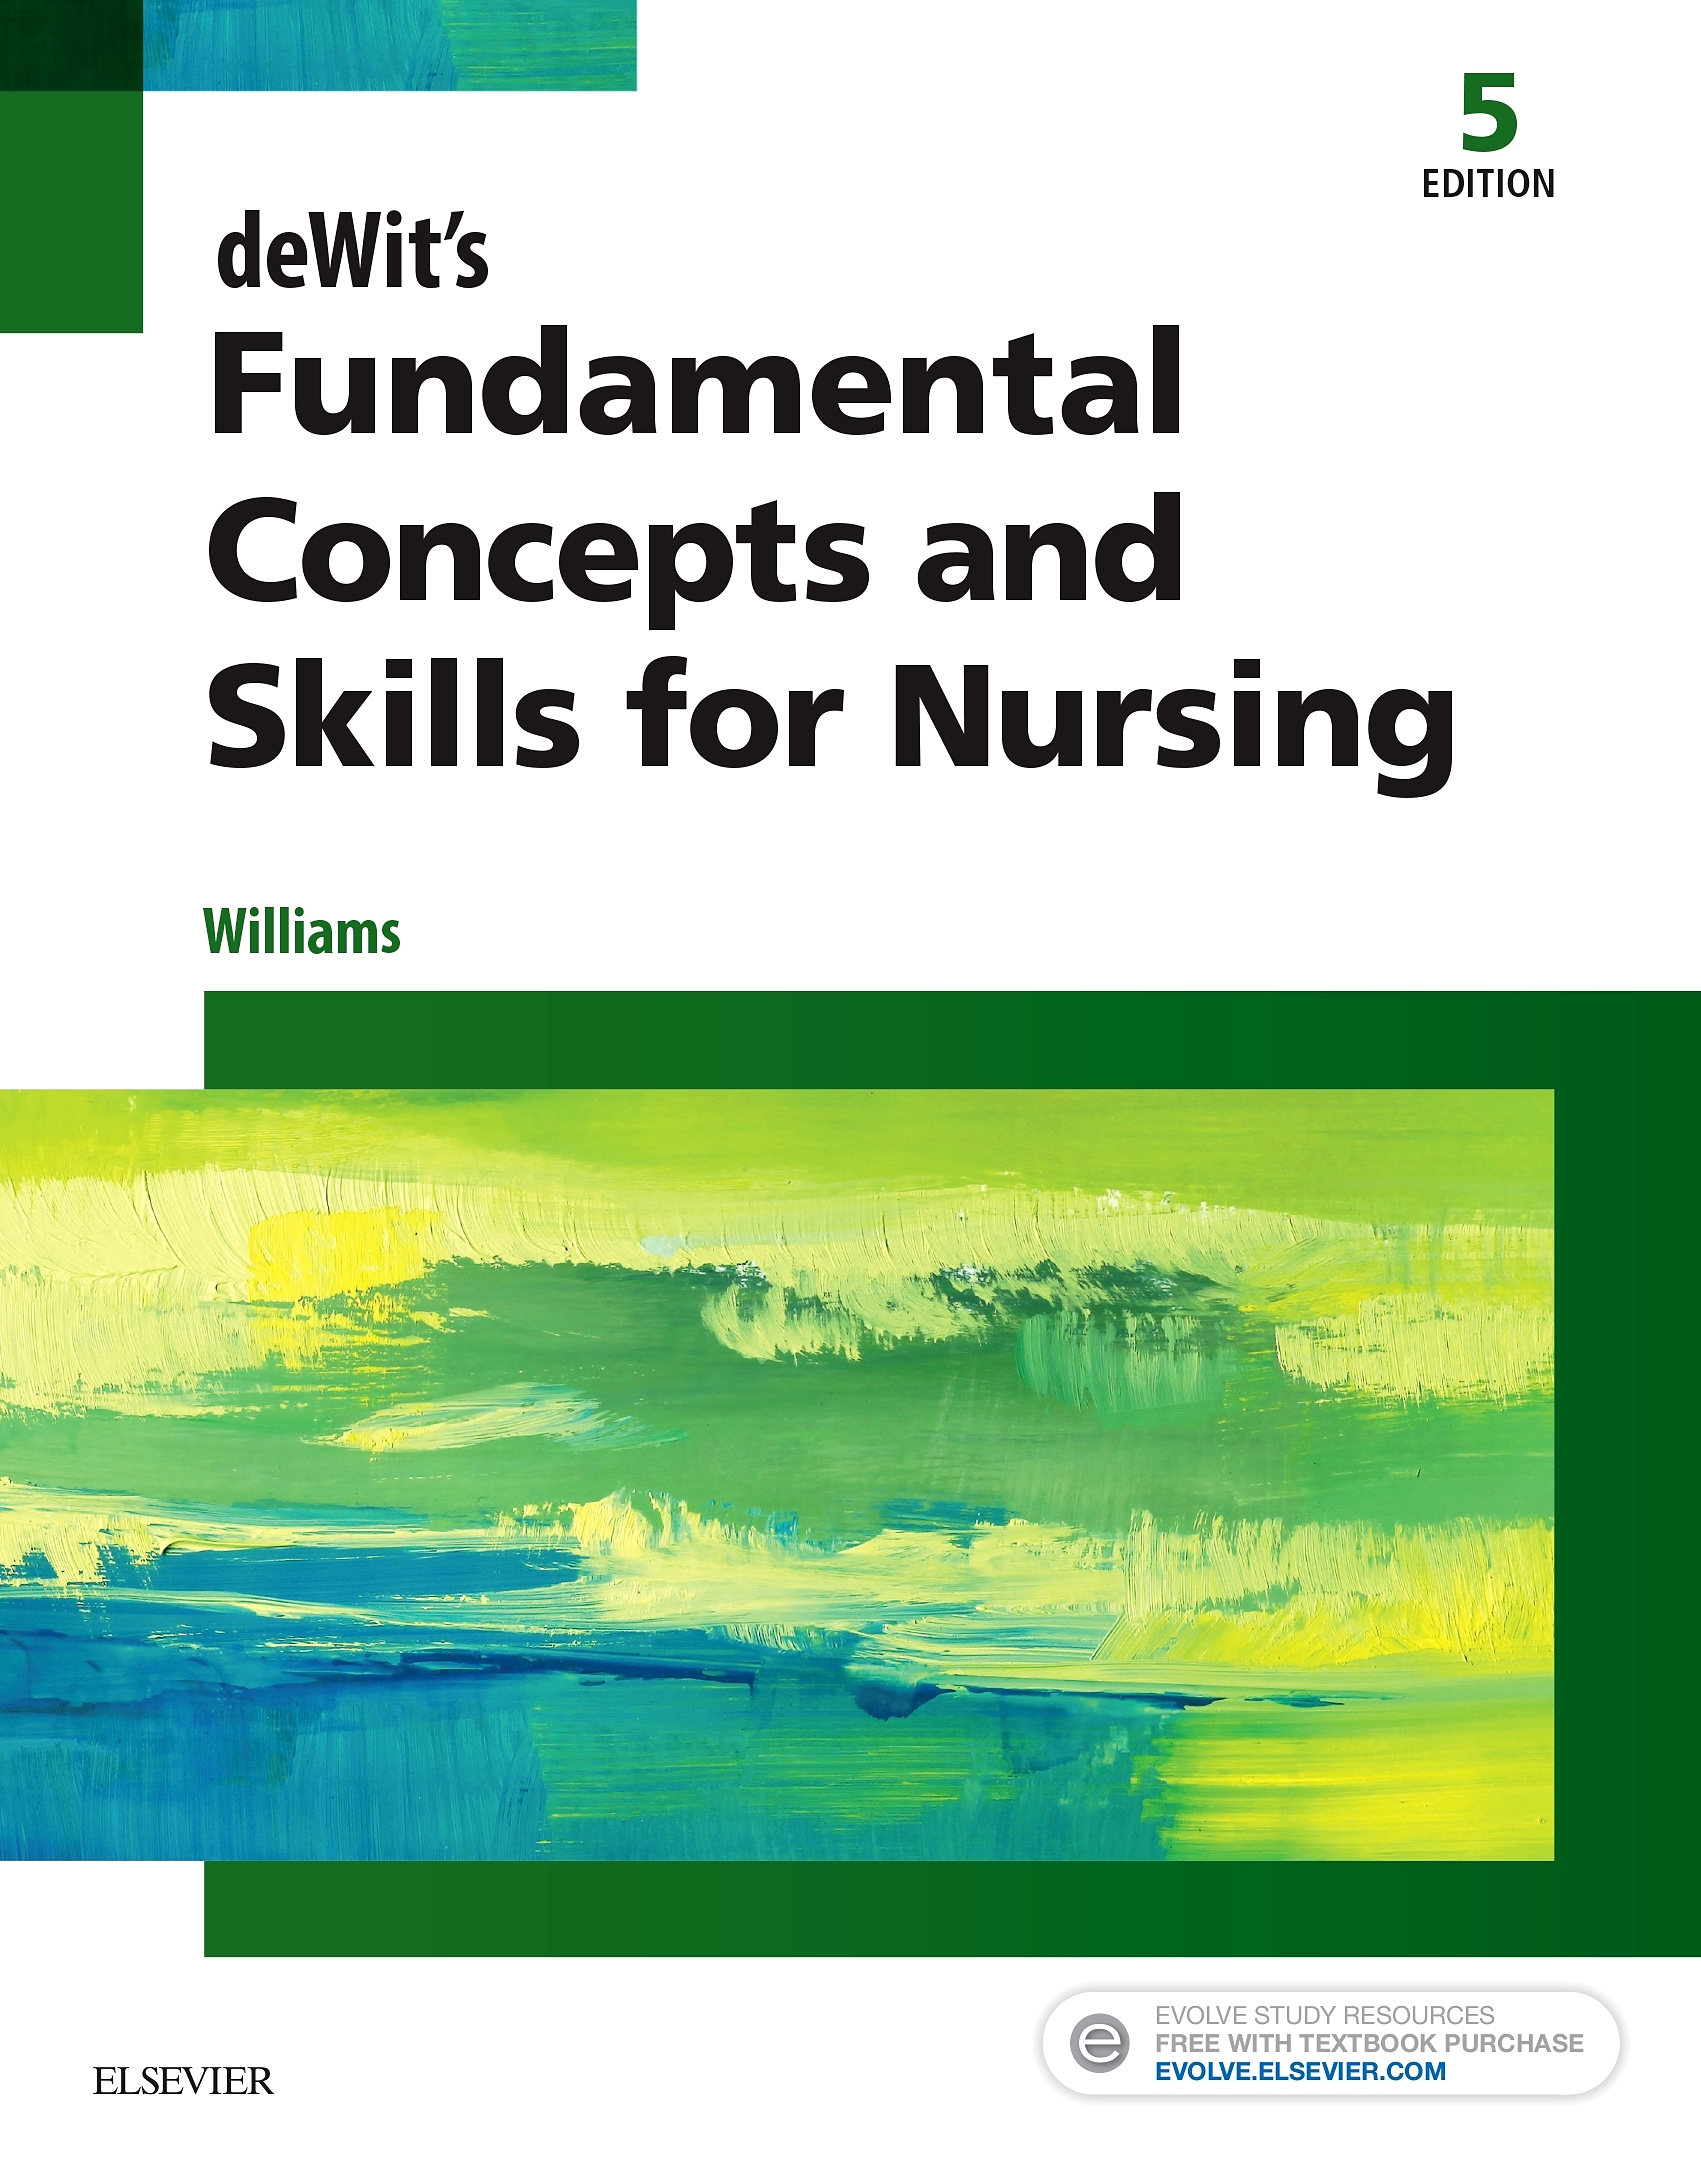 Evolve Resources for deWit's Fundamental Concepts and Skills for Nursing, 5th Edition